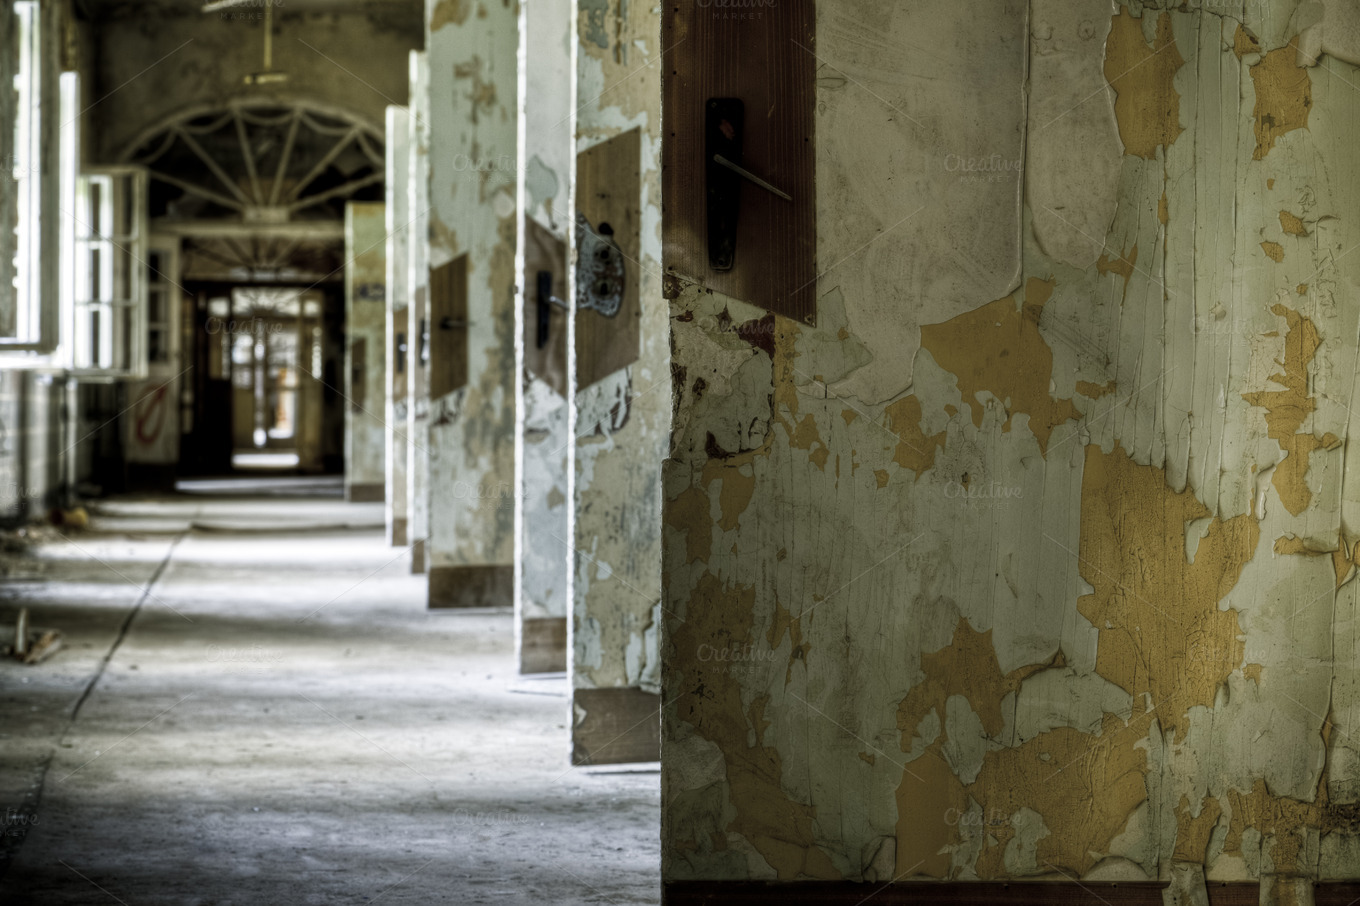 inside abandoned buildings photography - photo #27